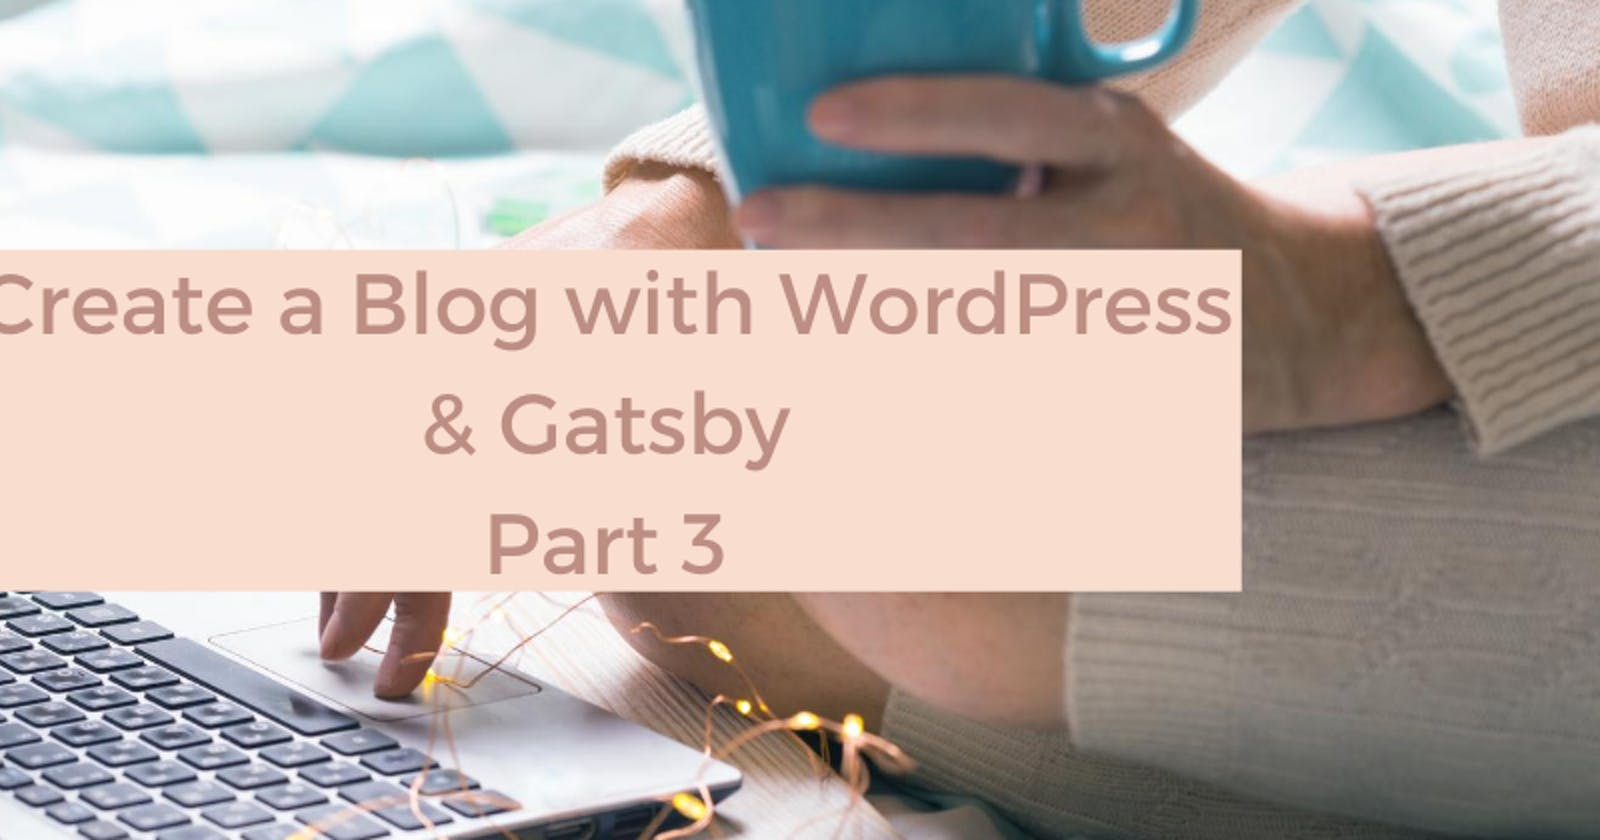 Create a Blog with WordPress and Gatsby - Part 3